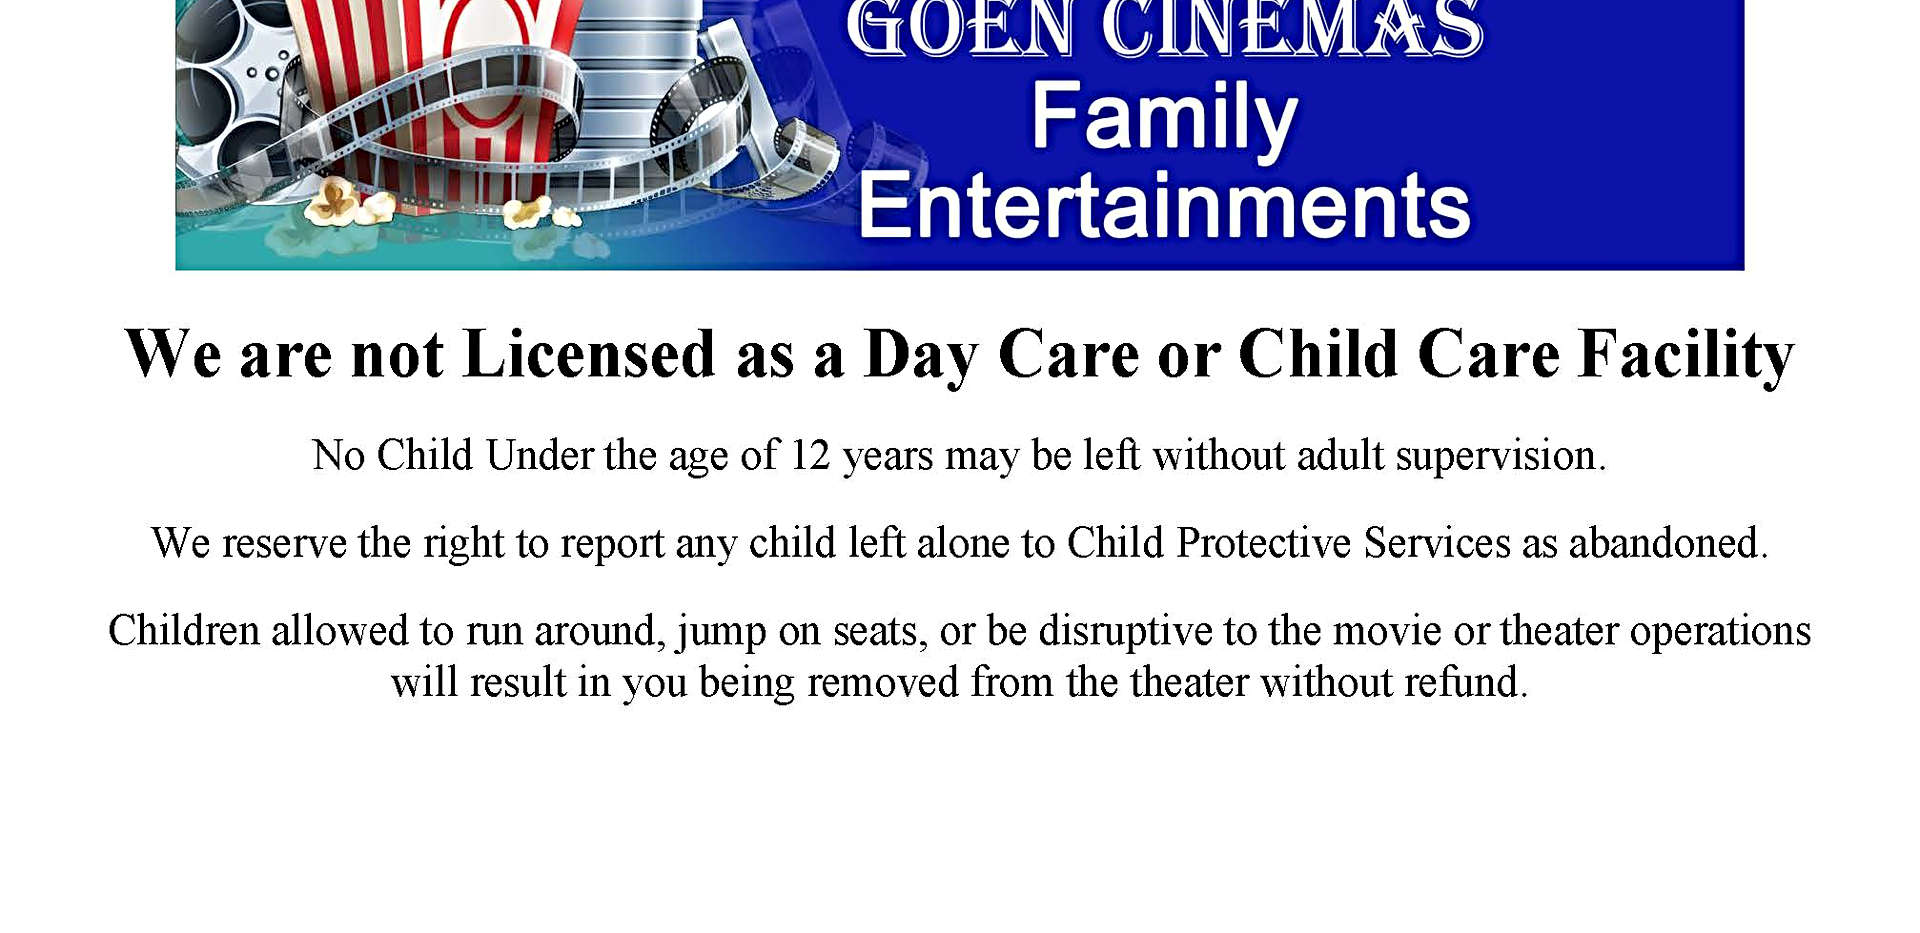 Admission Rules For Children.jpg